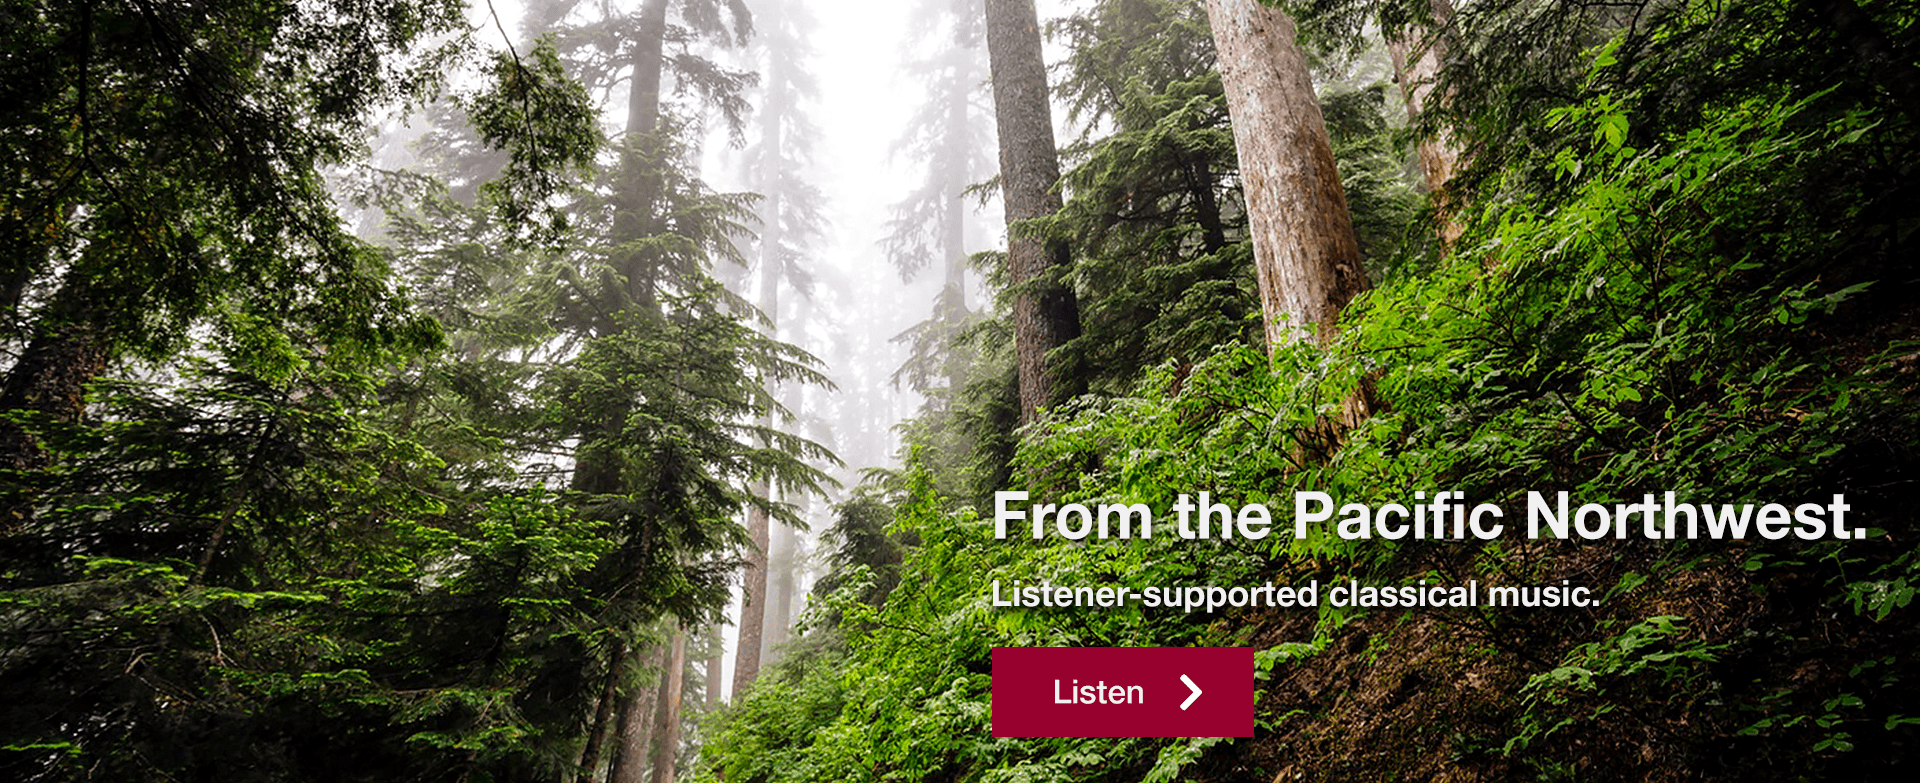 From the Pacific Northwest. Listener-supported classical music.